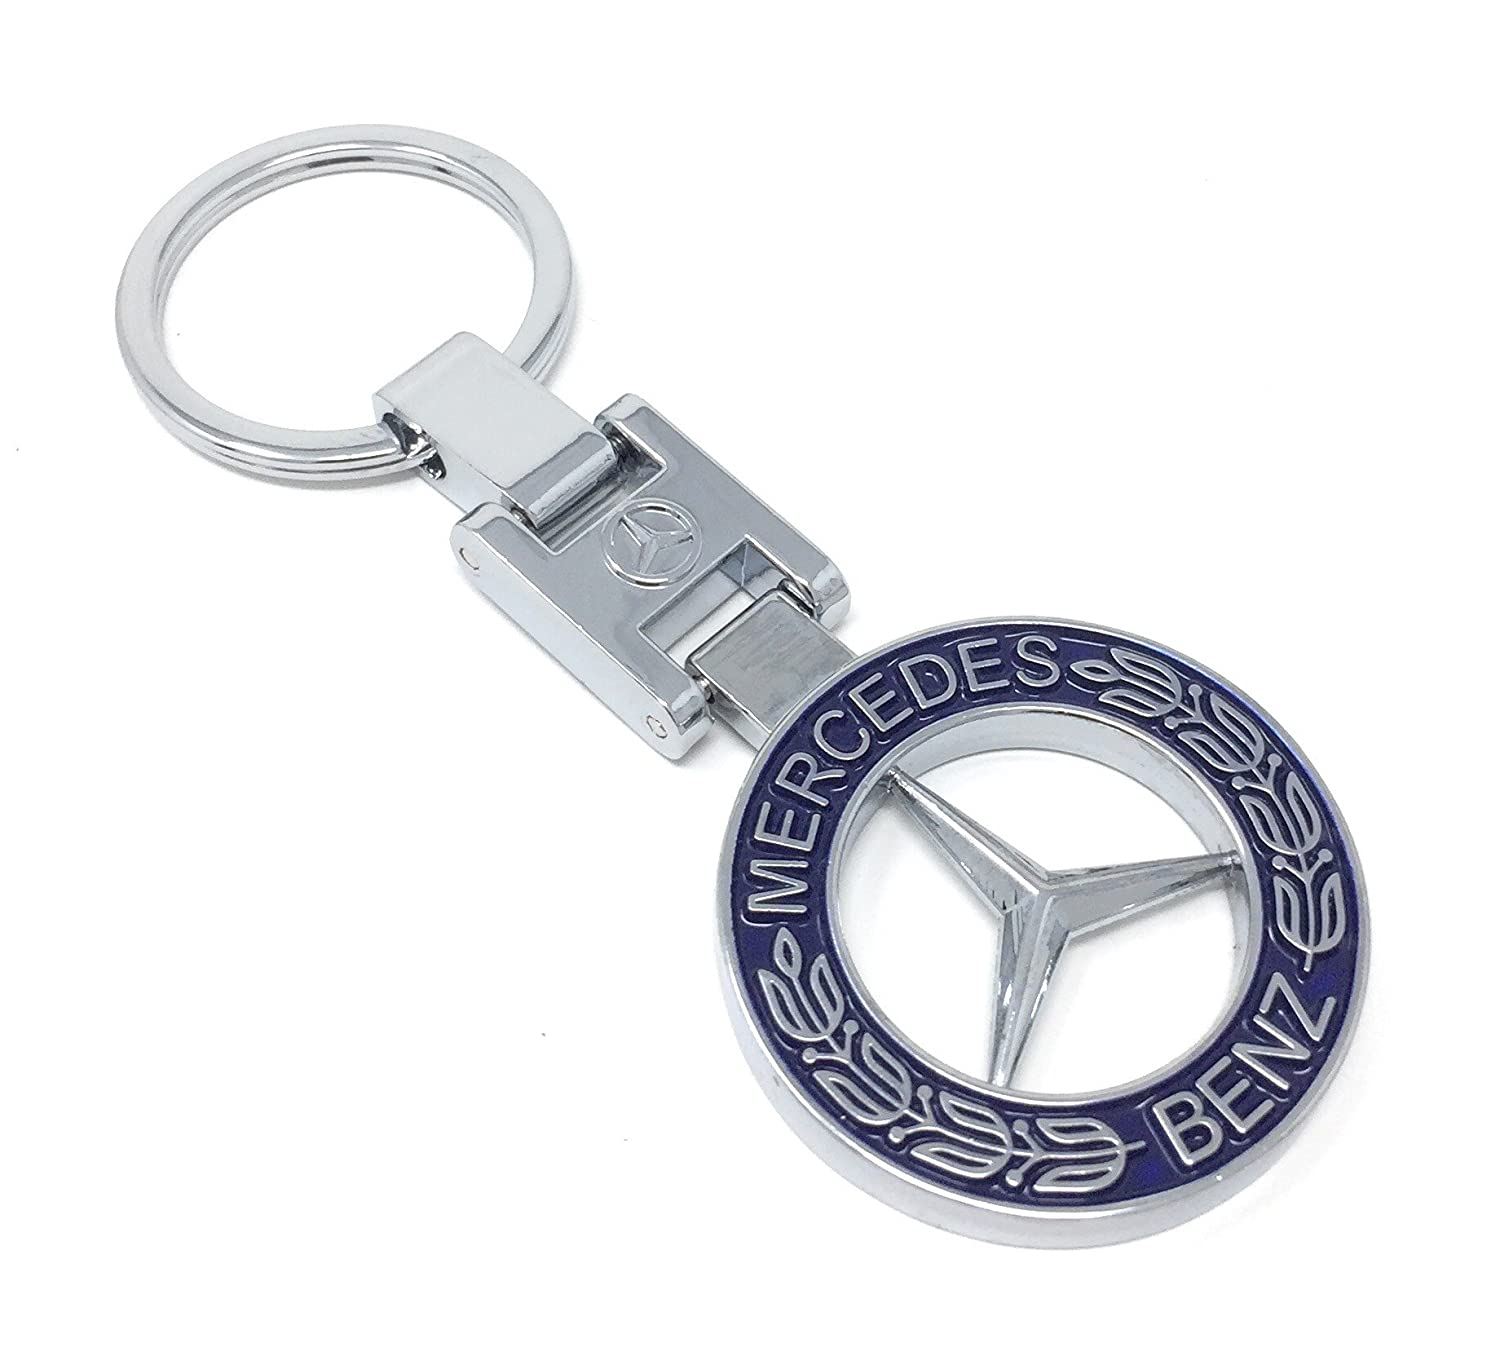 MB Key Chain Best Mercedes Benz Key Chain'Cheetah' Keyring Both Side Same Design, Special for PET Lovers China 3423